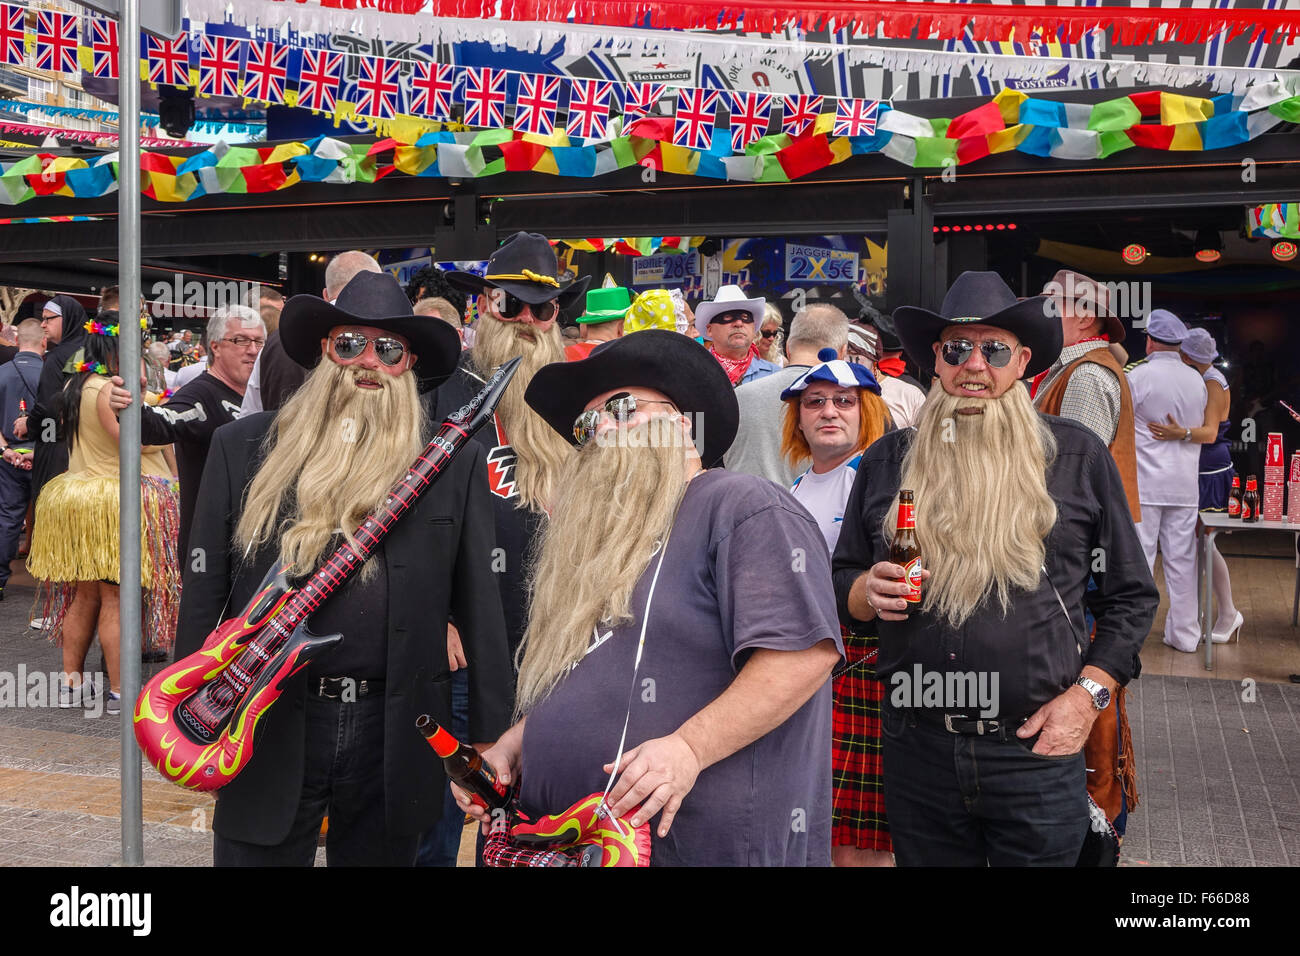 Benidorm, Spain. 12th November, 2015. An estimated 40,000 British revellers throng the streets of Benidorm New Town - Stock Image